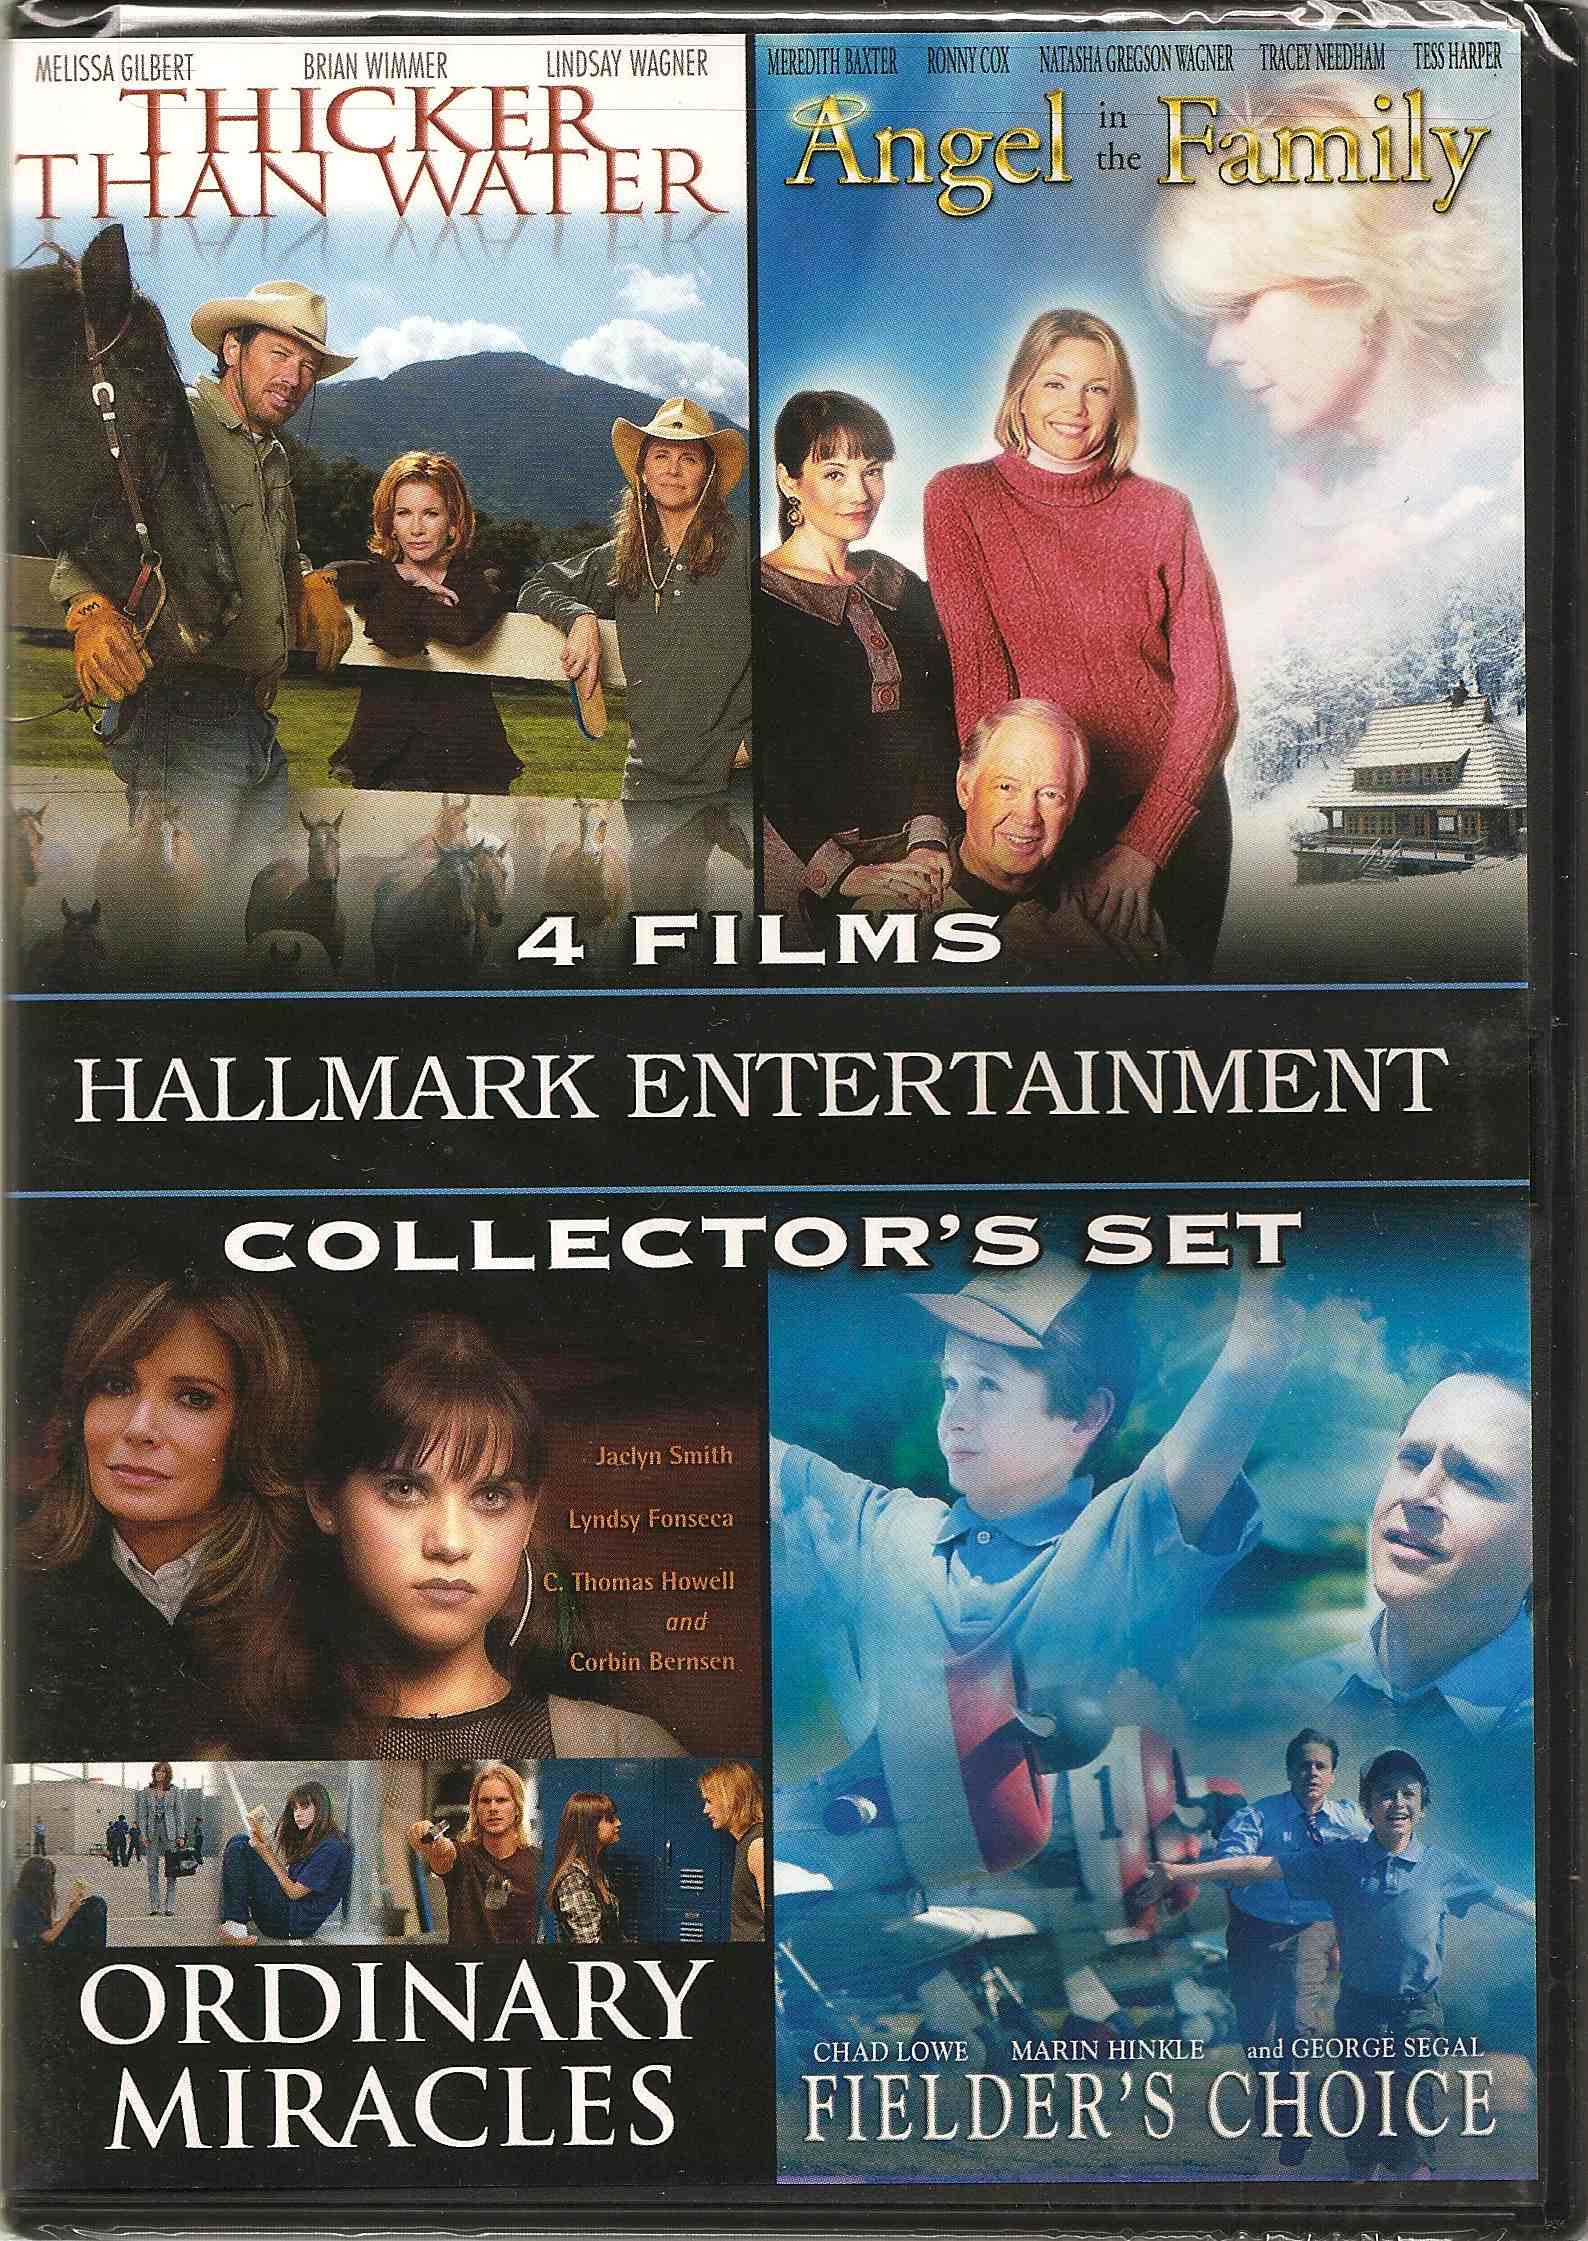 4 Films Hallmark Entertainment collector's set